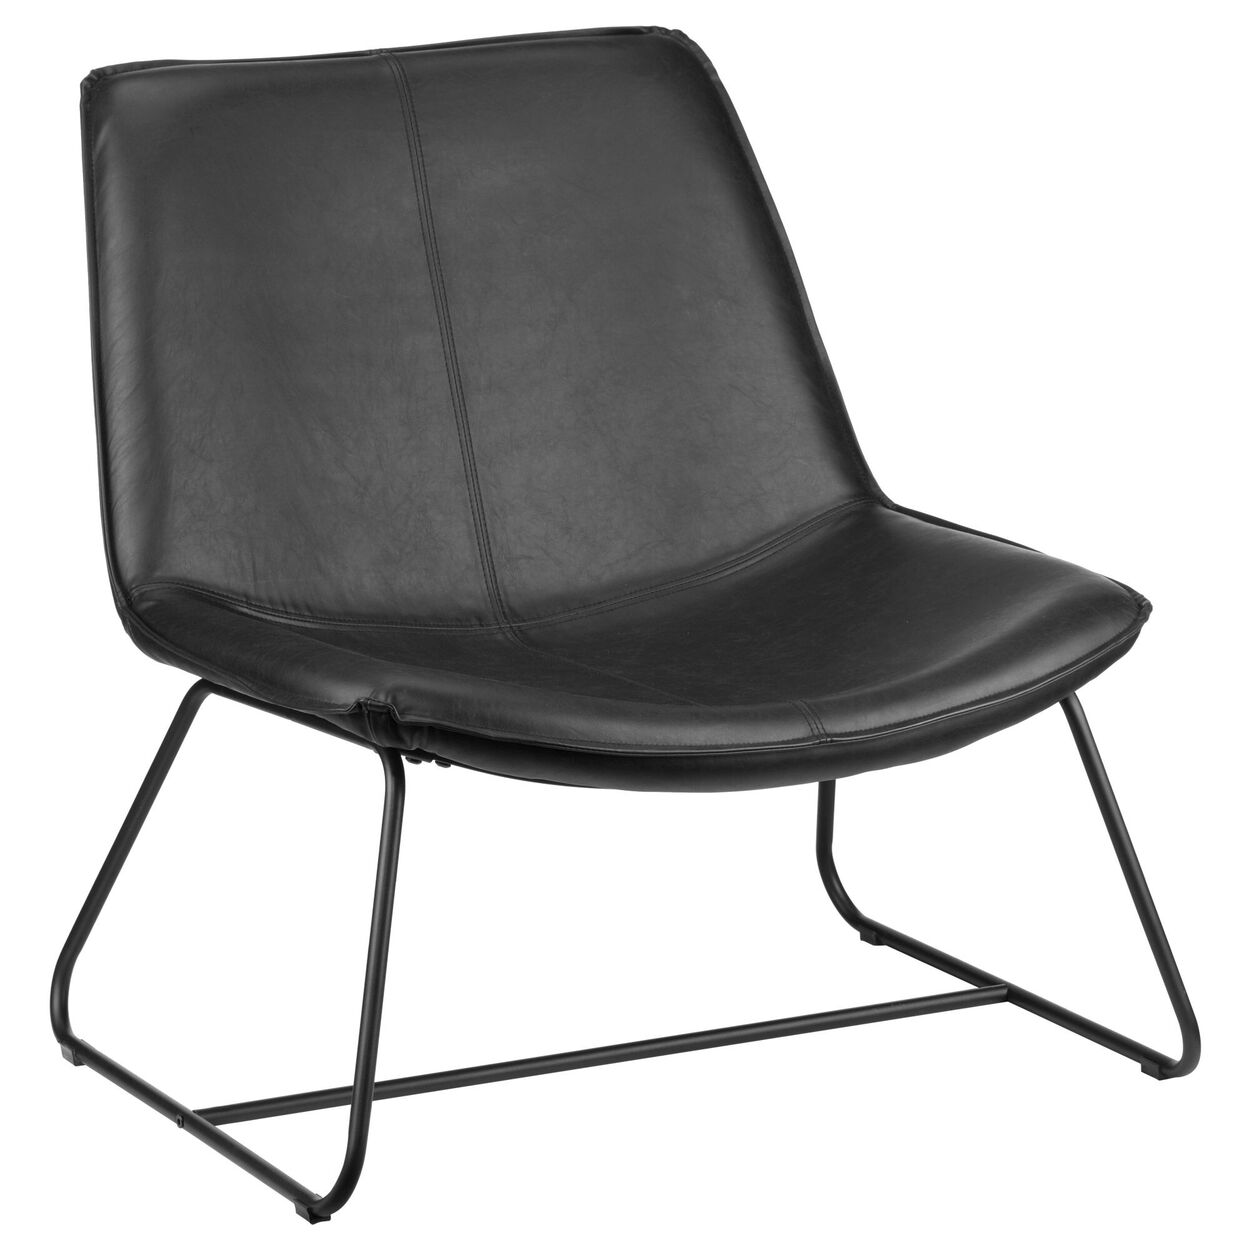 Faux Leather and Metal Lounge Chair